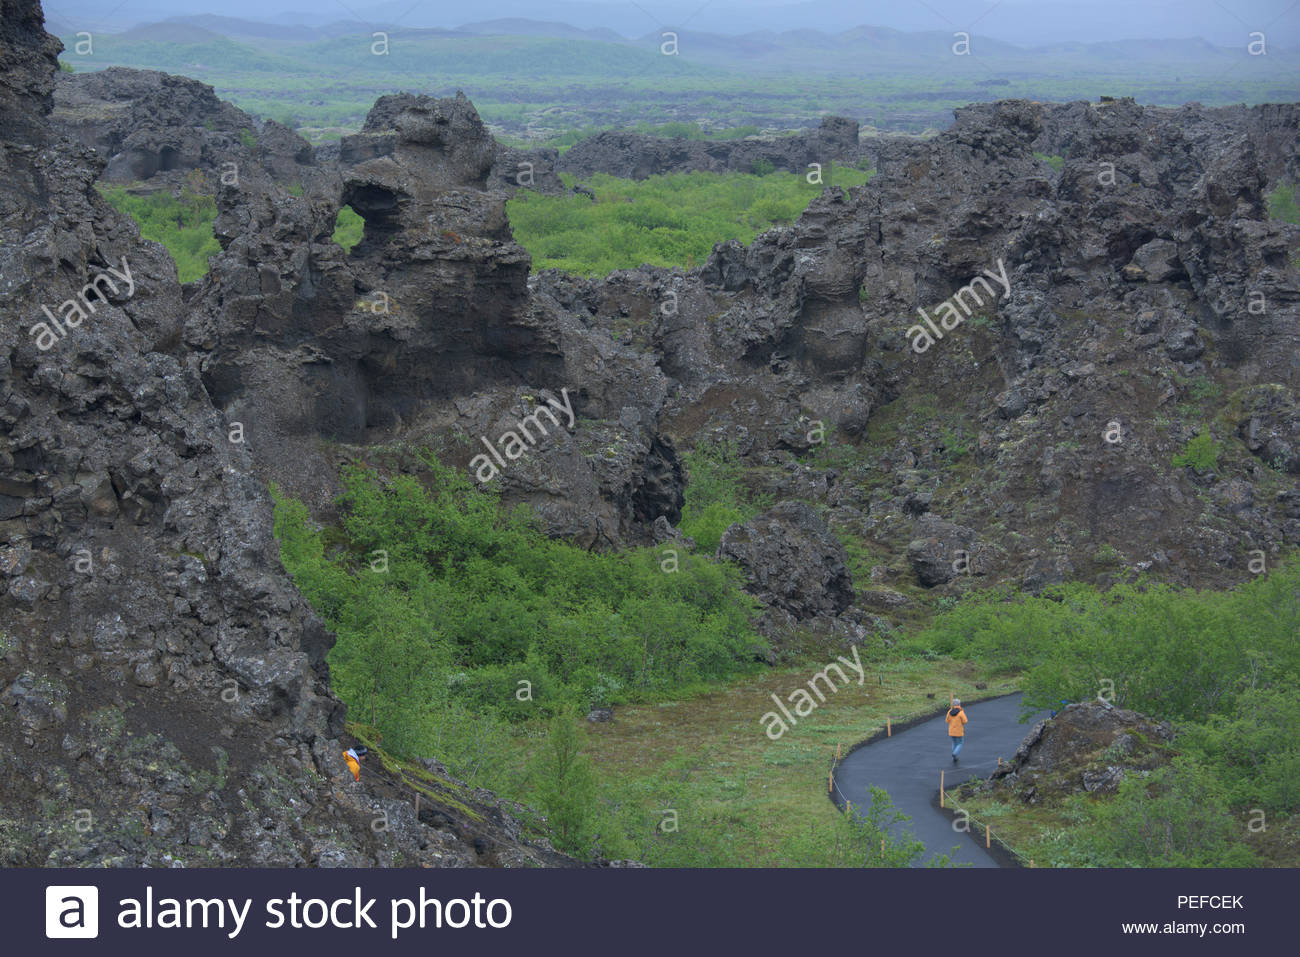 A hiker walks past the Dimmuborgir lava formations. Stock Photo